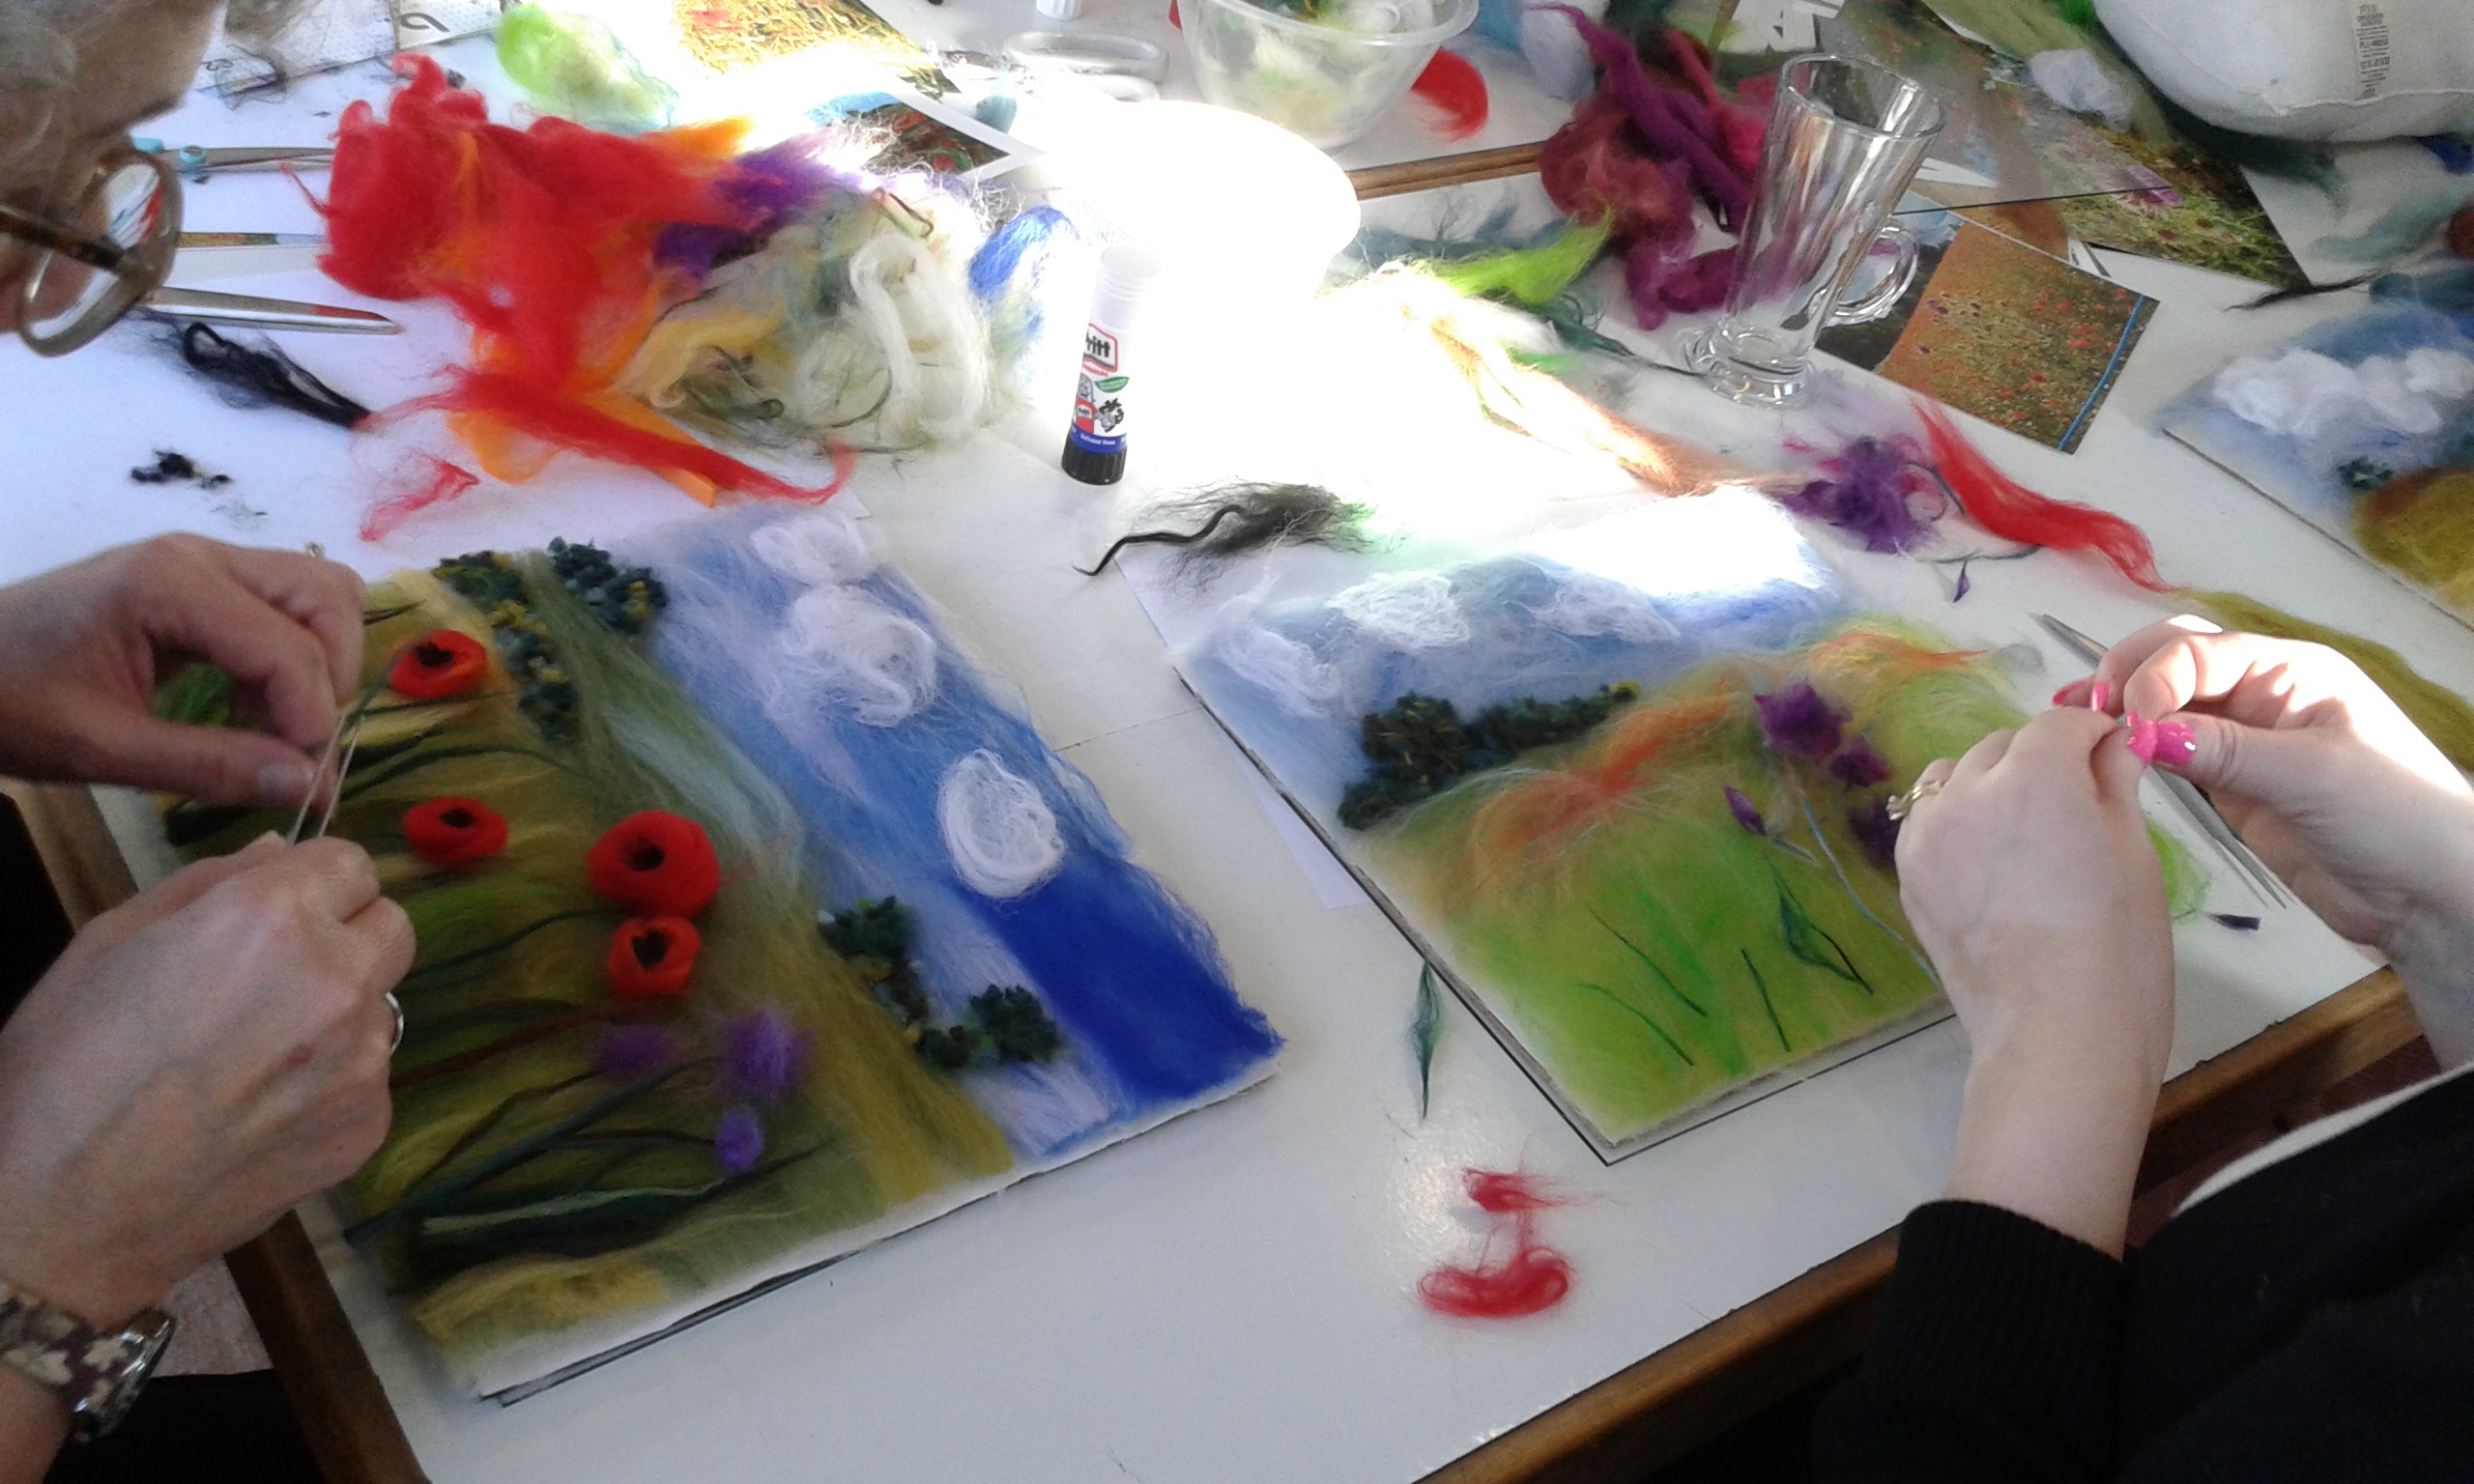 Working with wool fibres at the wool painting workshop at Bevere Gallery